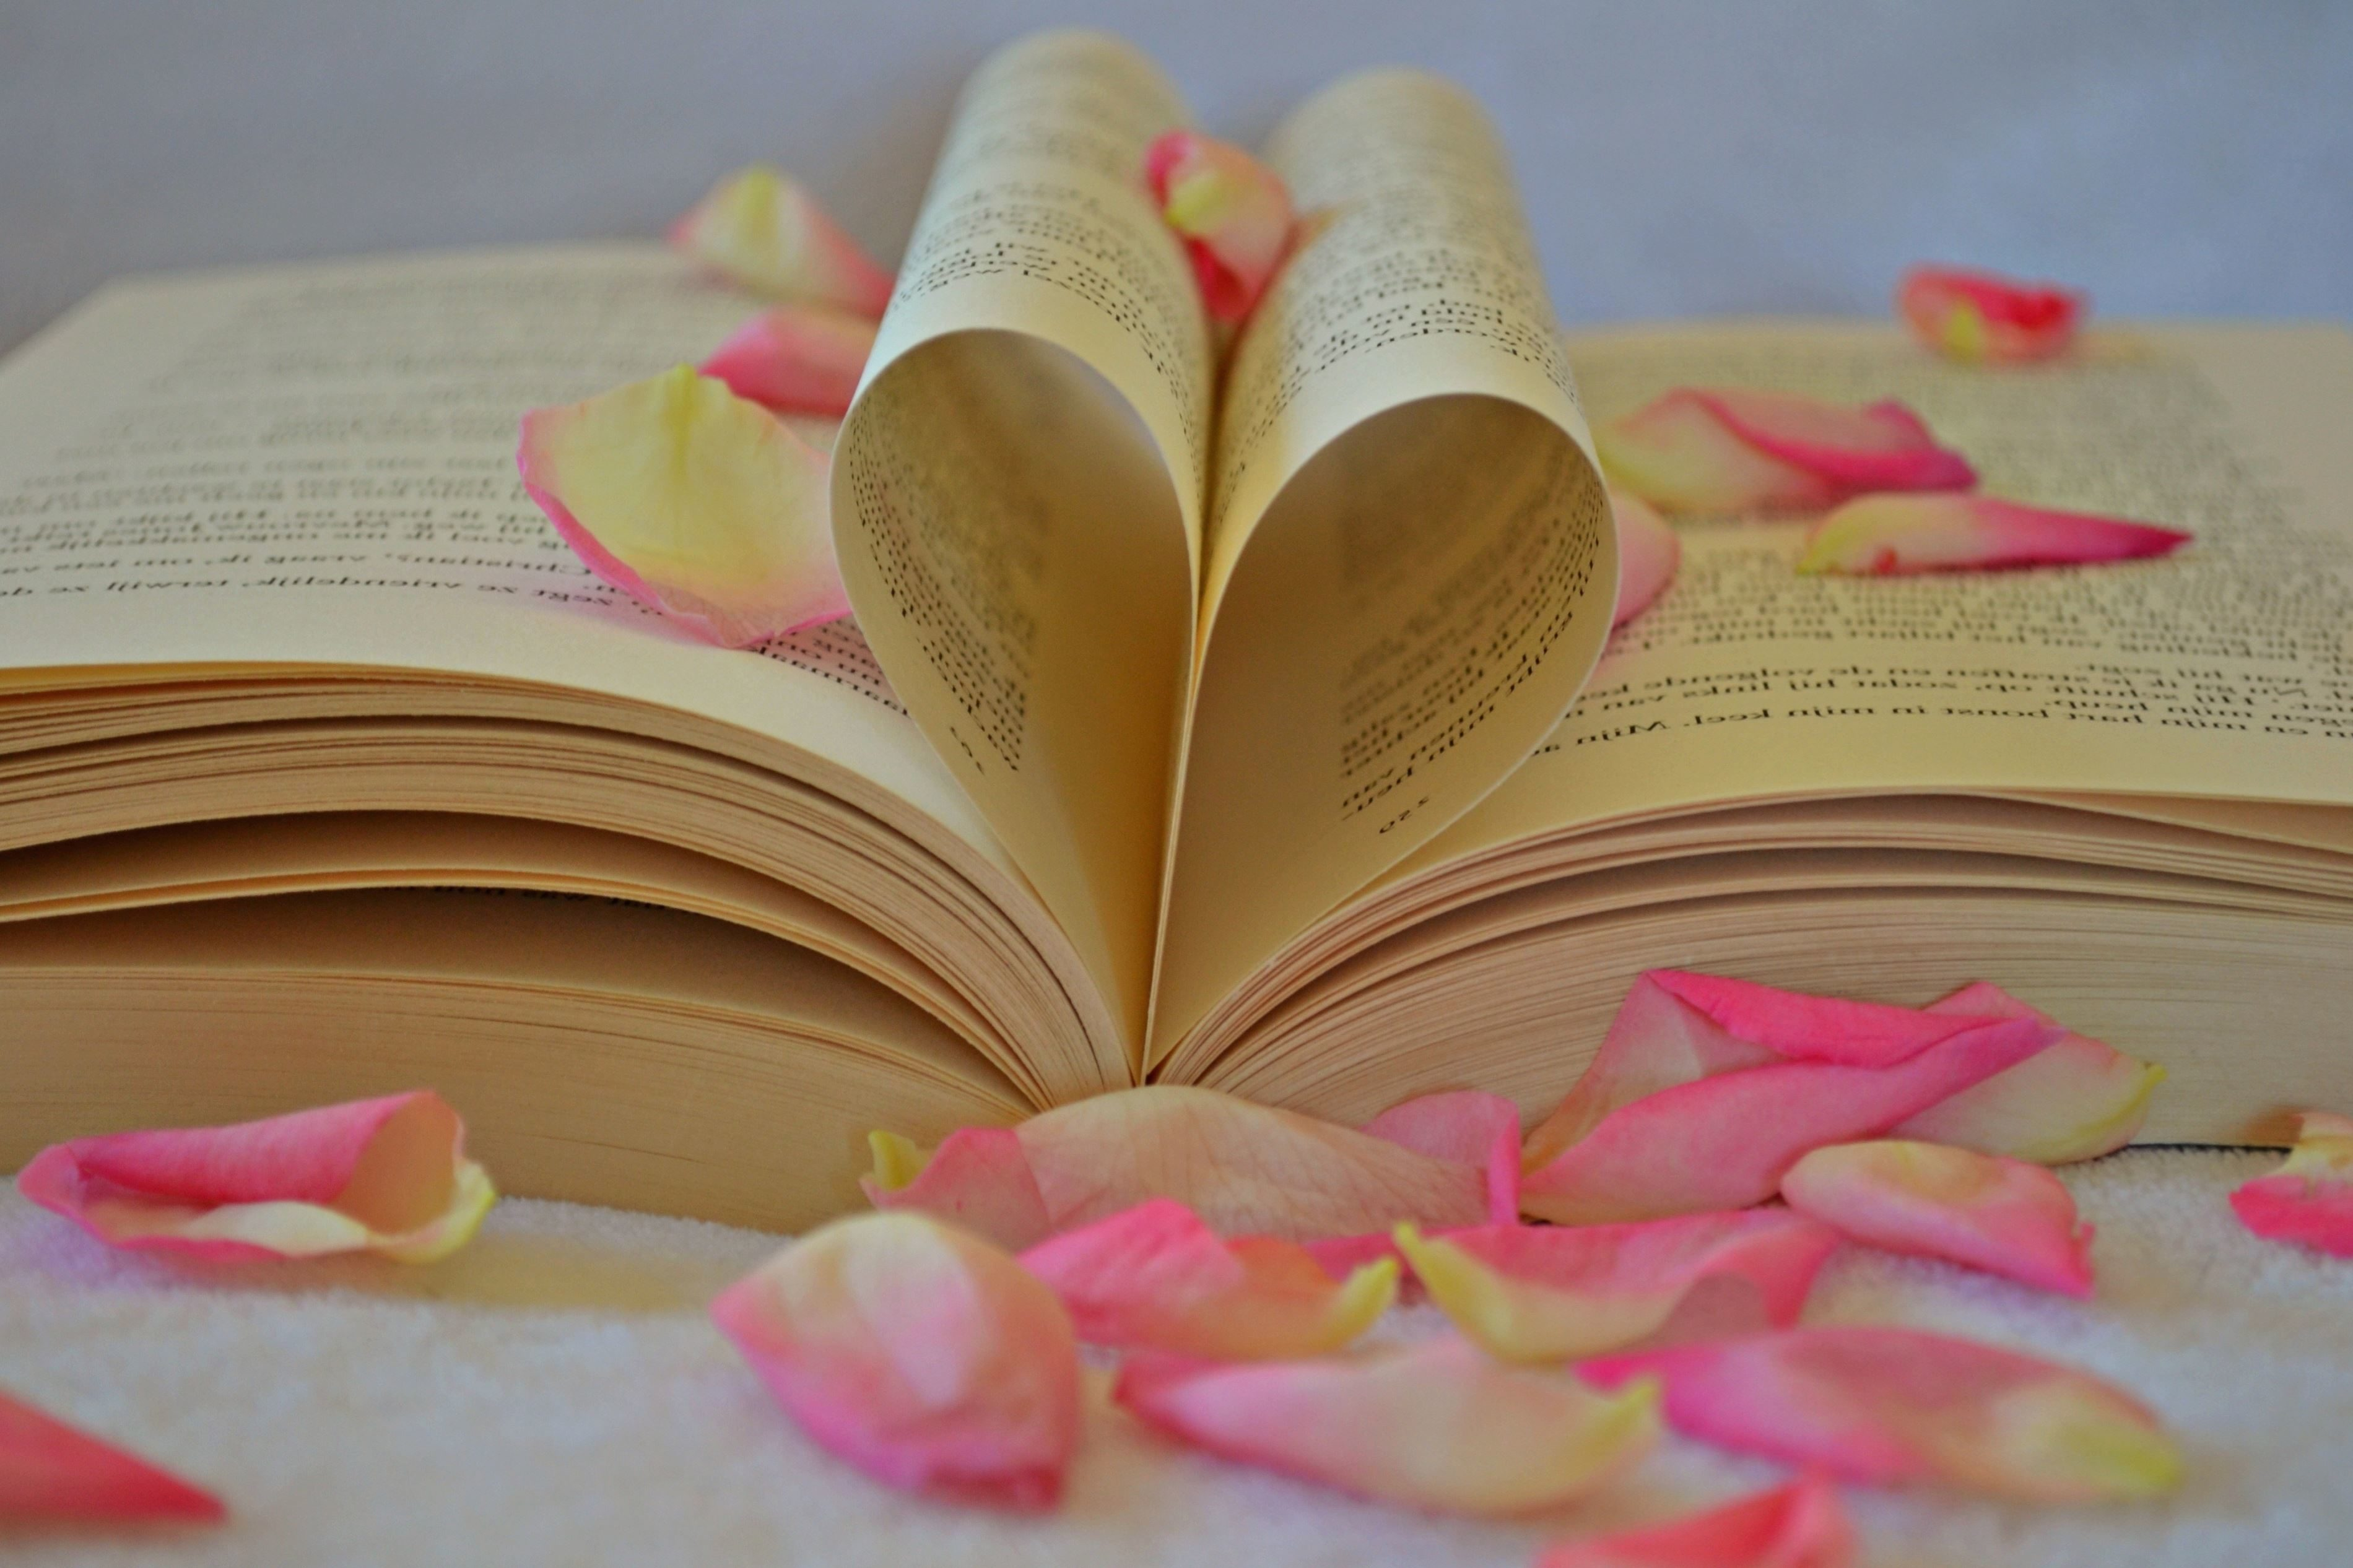 valentines day book romantic love literature petals - Valentines Day Book